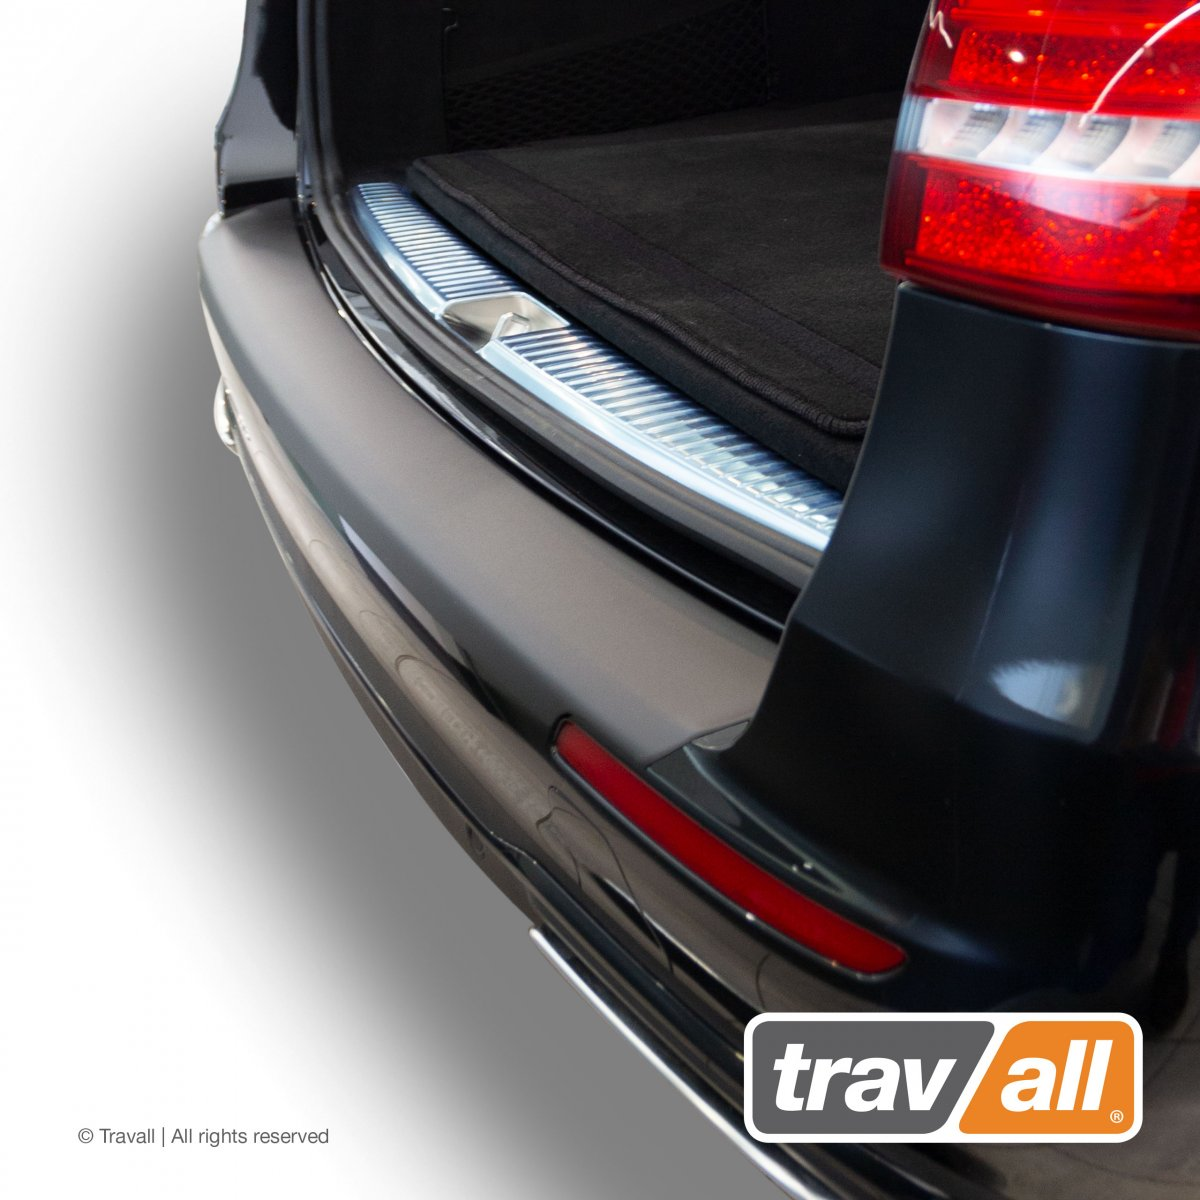 Travall® PROTECTOR-Kunststof Glad voor Mercedes Benz E-Klasse Estate (2016 - 2020)